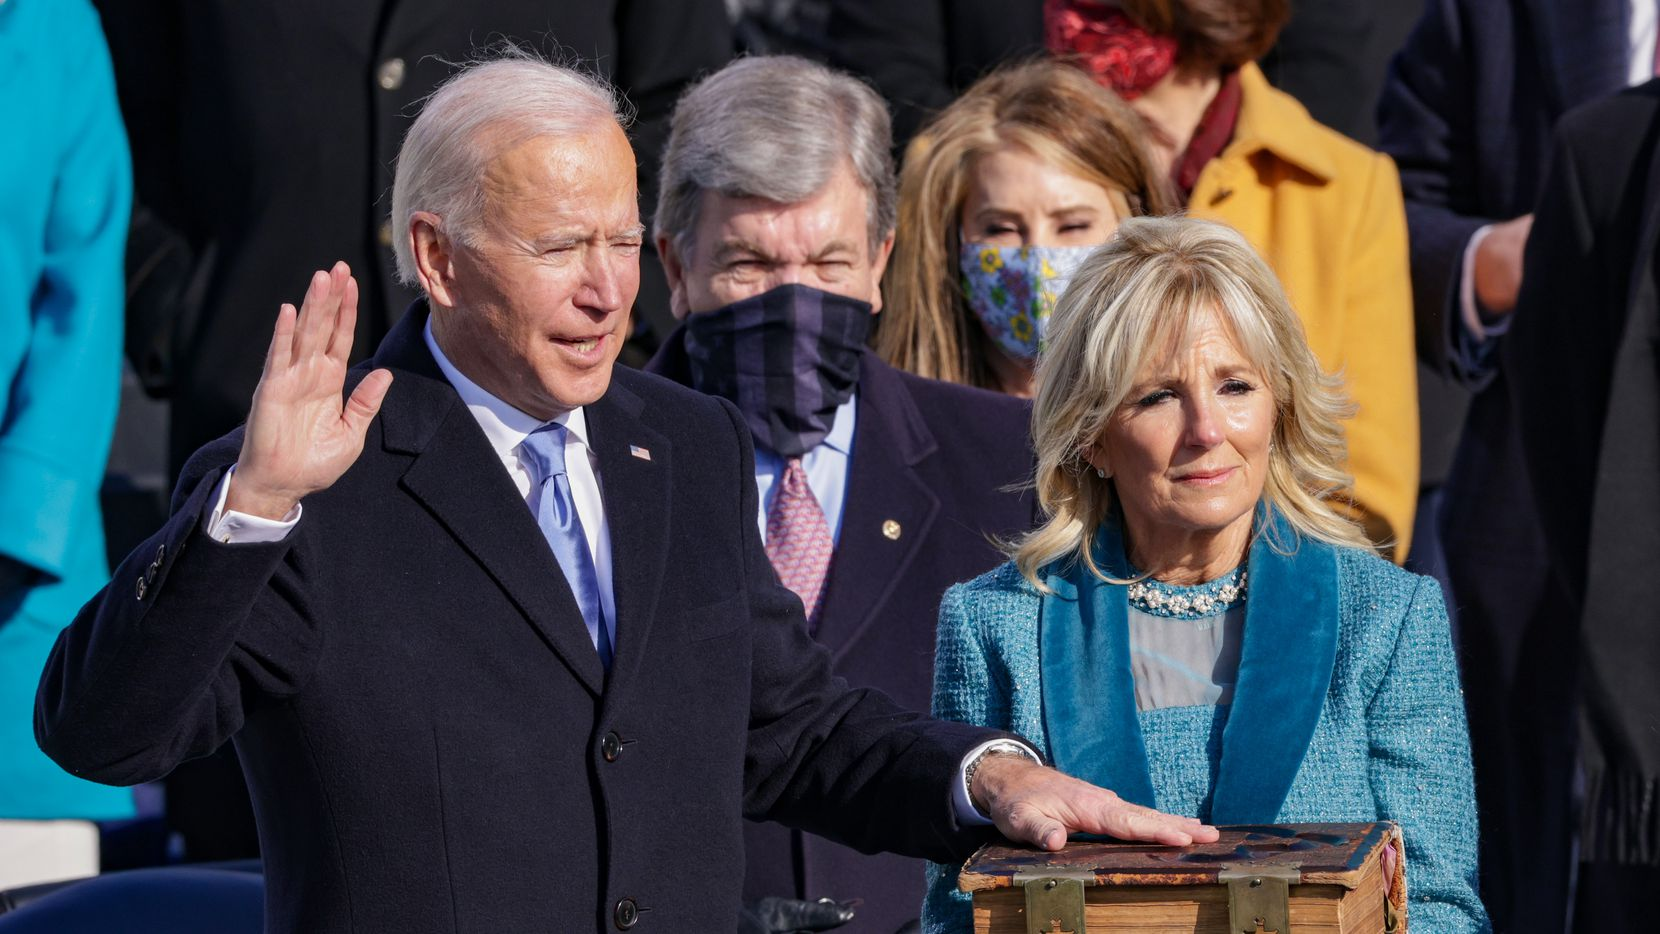 Joe Biden is sworn in as the nation's 46th president on the West Front of the U.S. Capitol on January 20, 2021, with first lady Dr. Jill Biden holding the Bible.